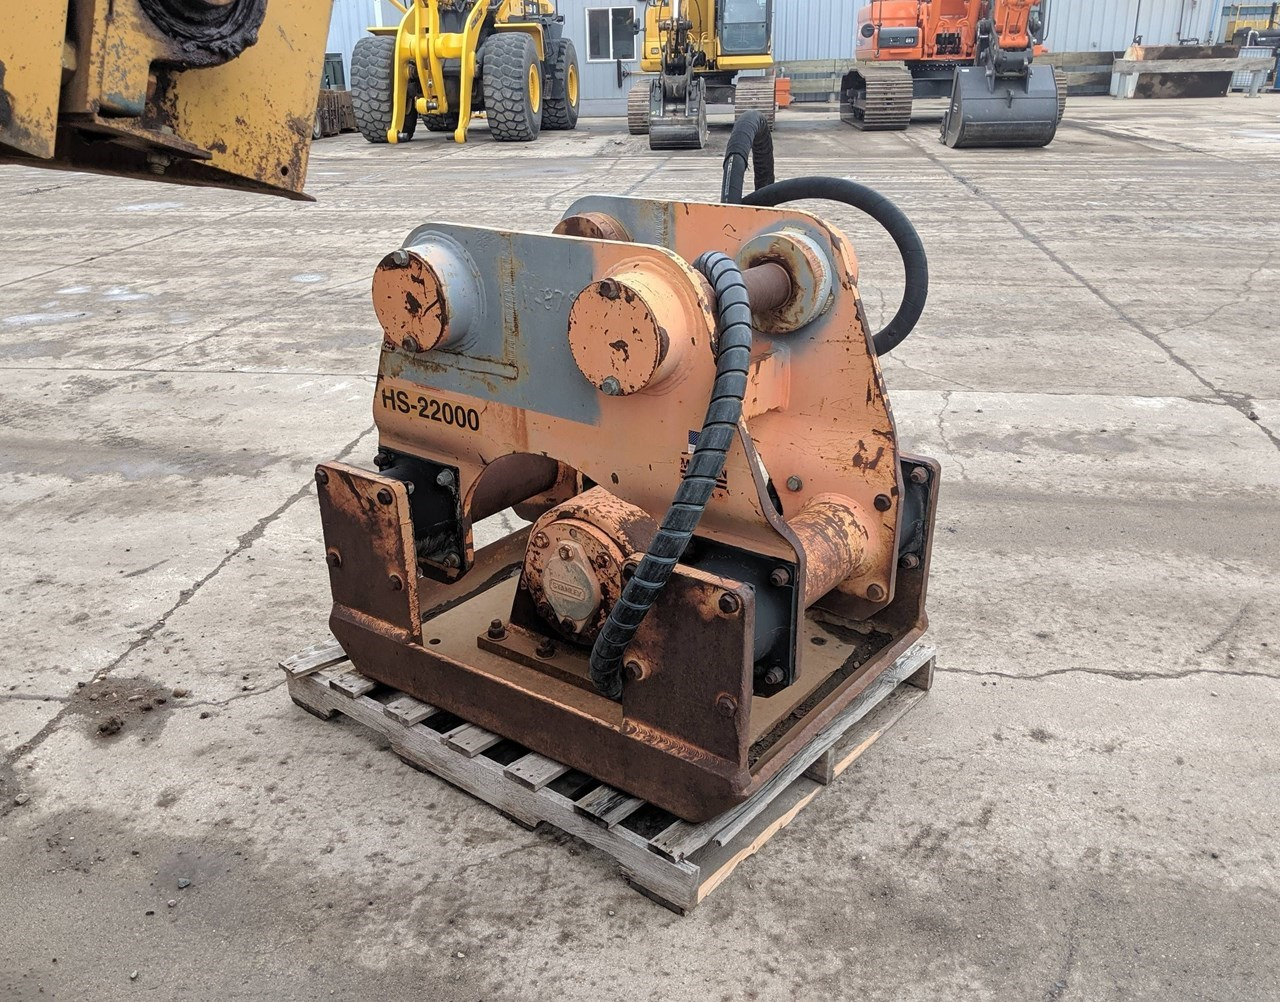 Stanley HS22000 Excavator Attachment For Sale